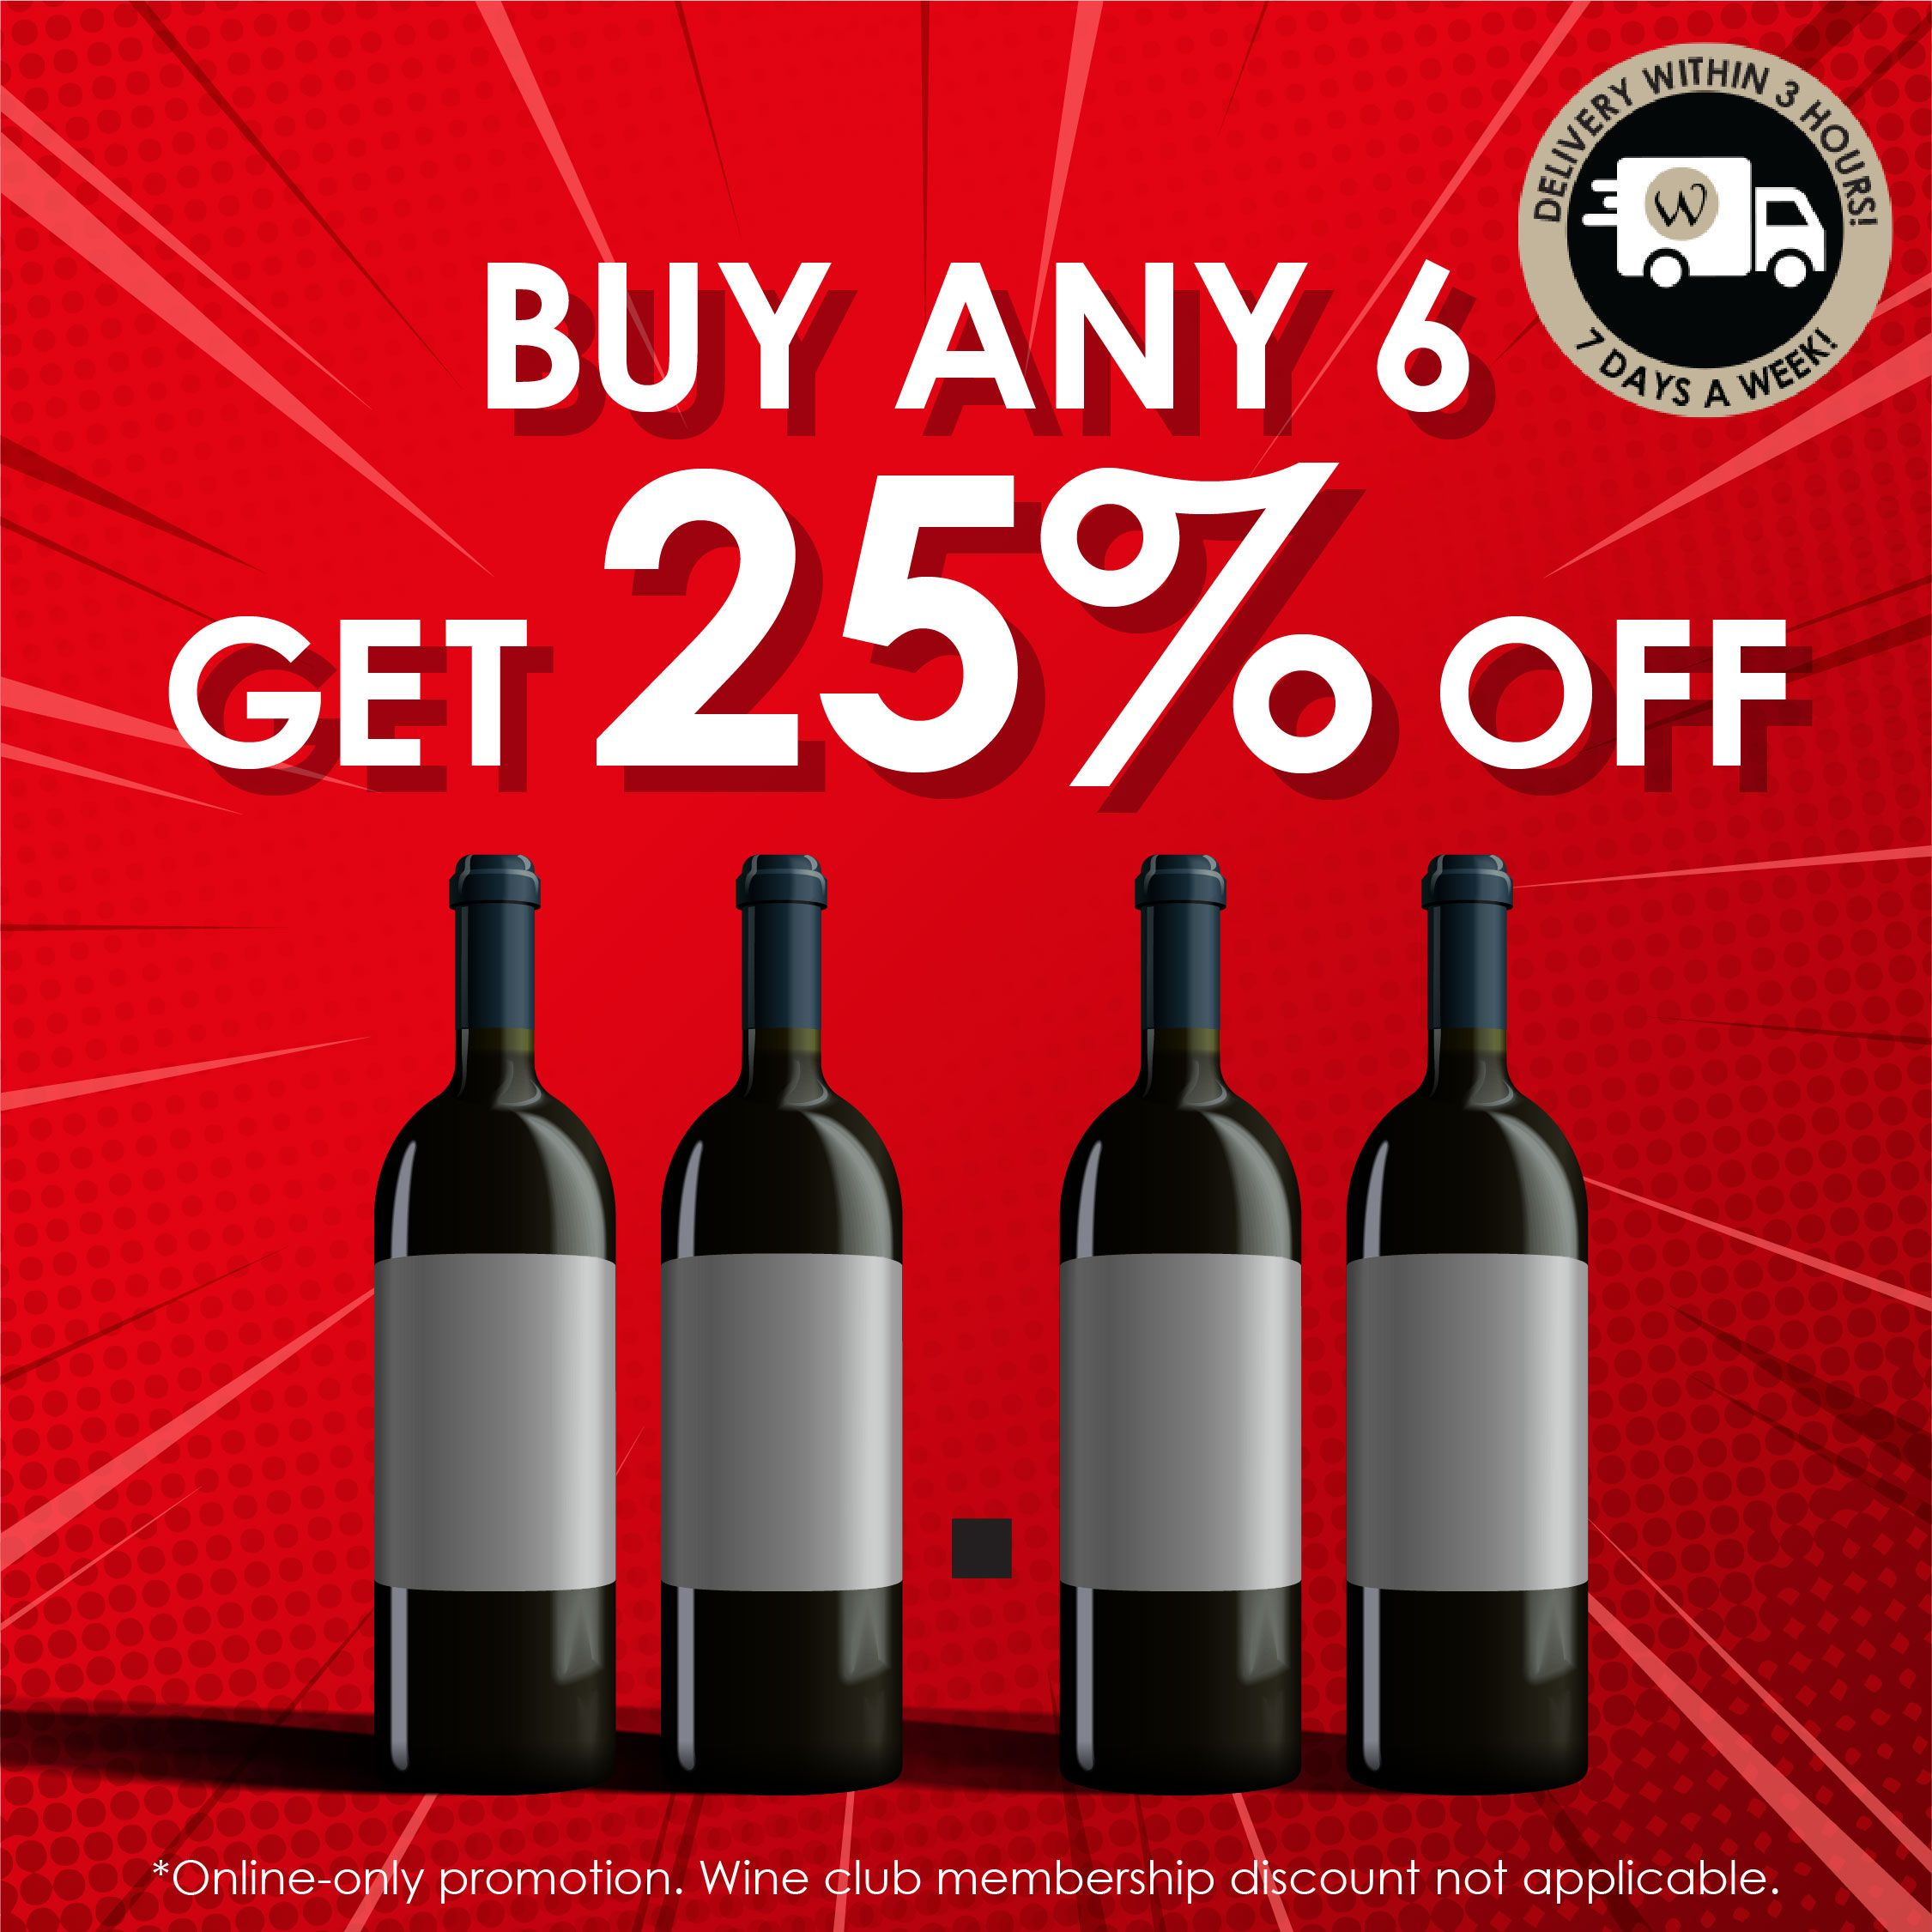 11 11 Sales Don T Miss Out On This Exclusive 3 Day Offer Fill Your Shopping Cart With 11 Different Wines Fr Buy Wine Online Wine Delivery Wine Delivered